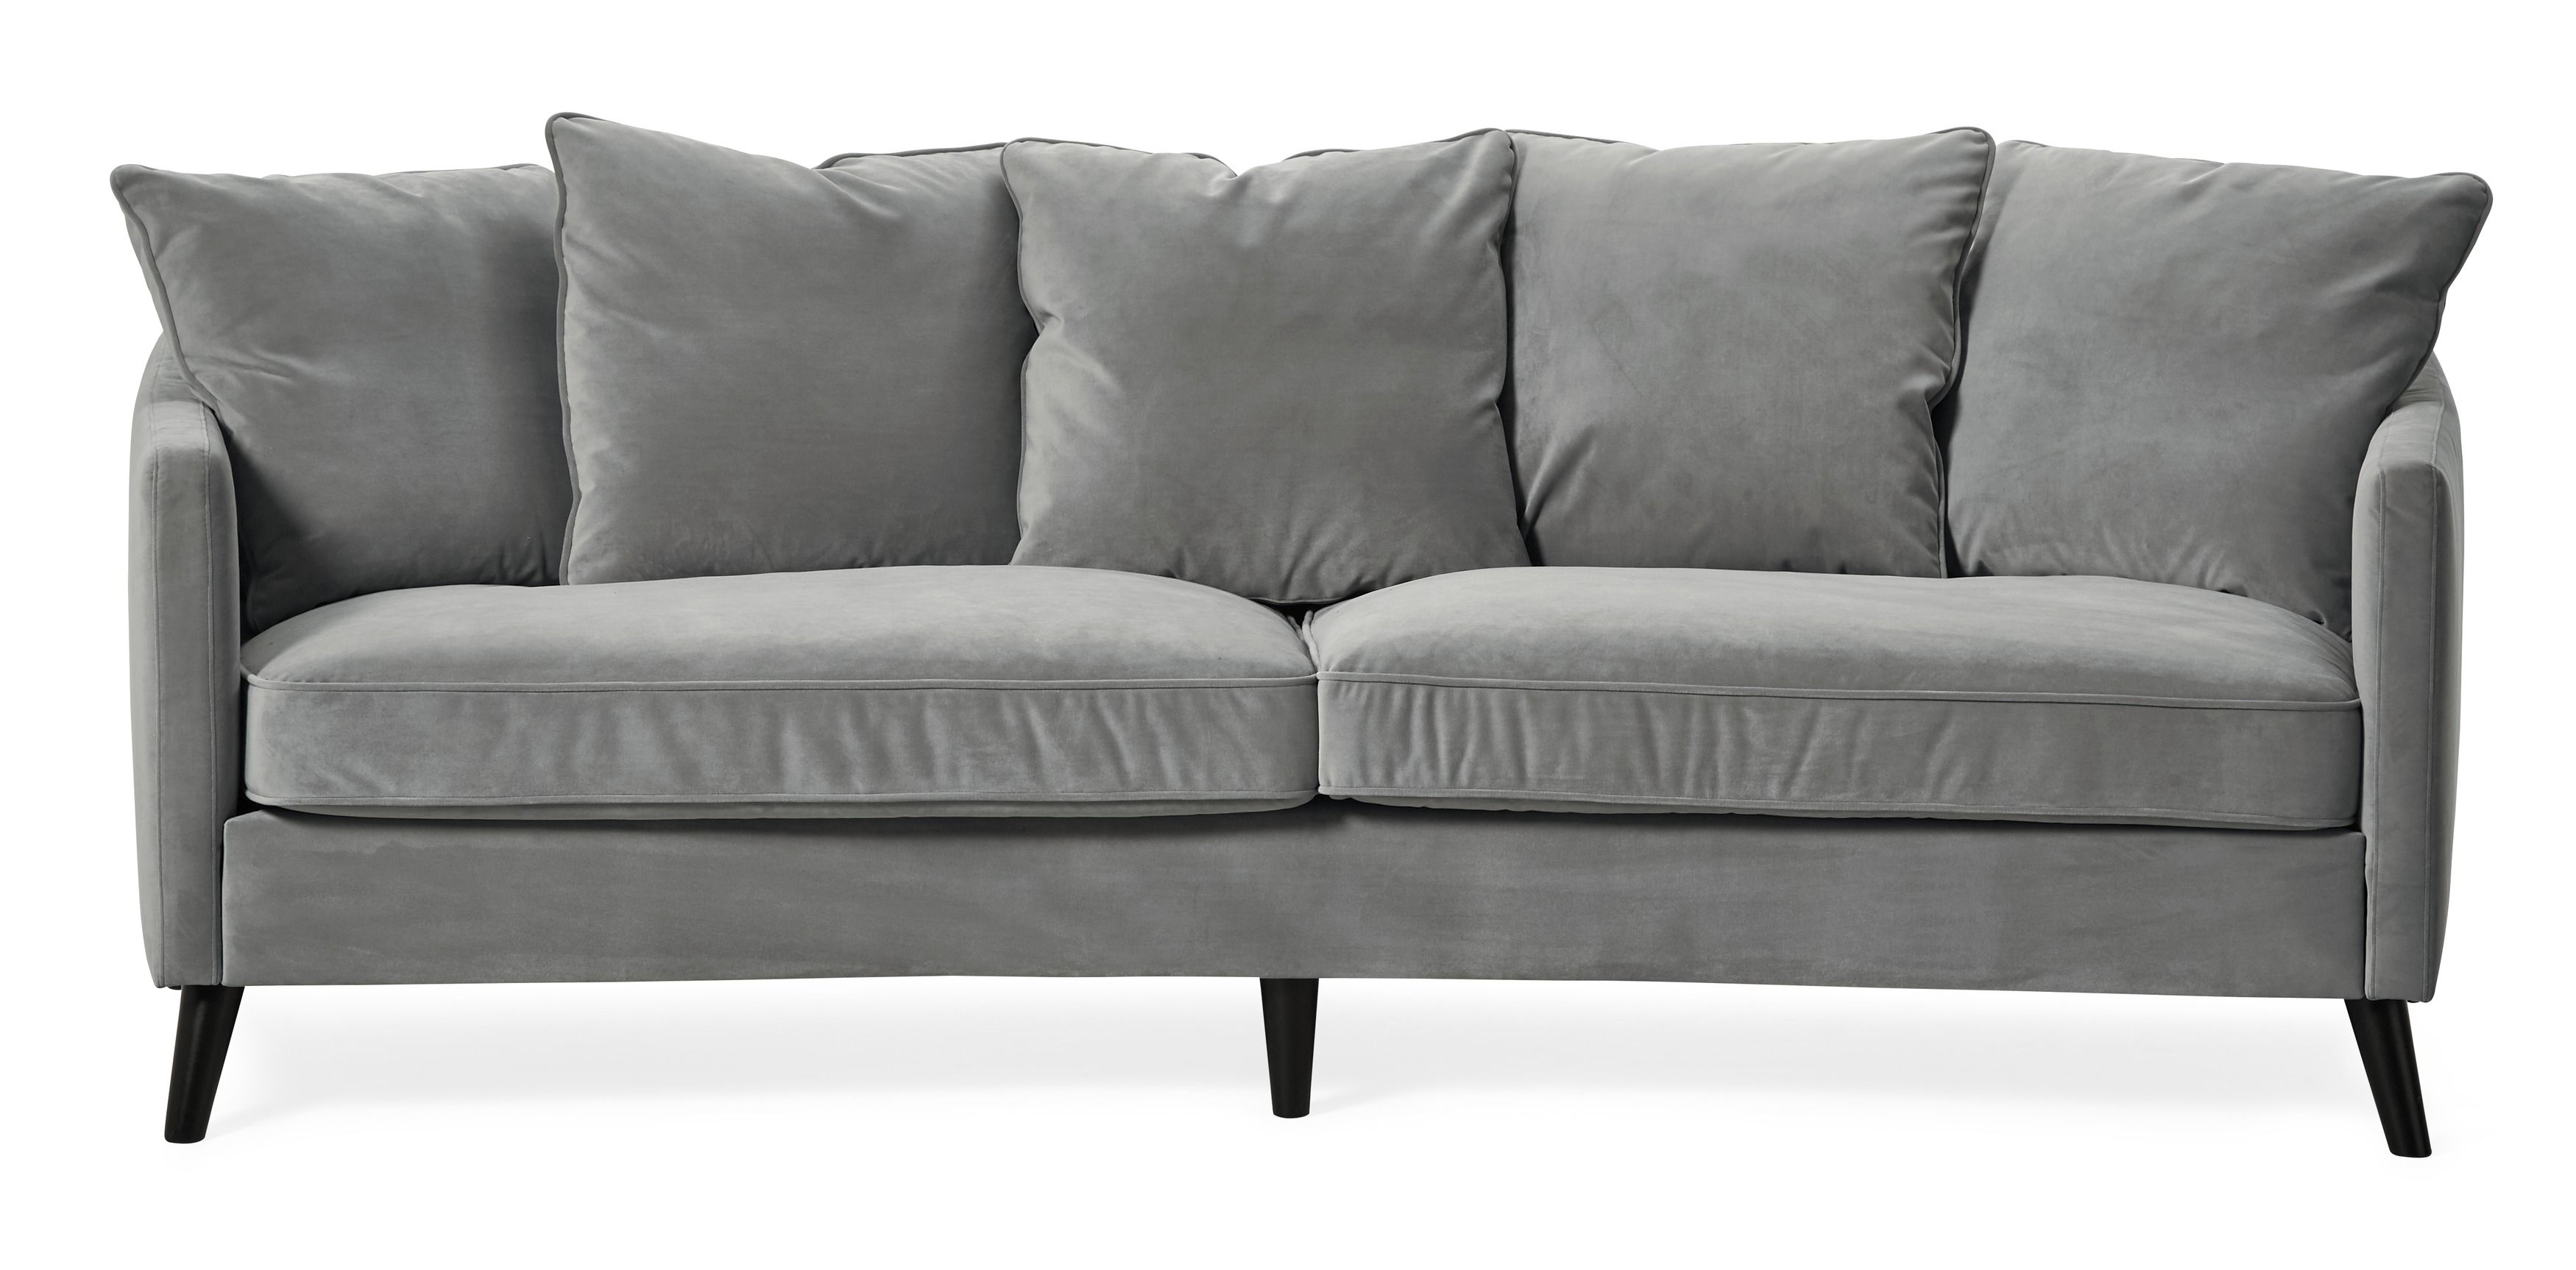 Ashton Sofa Oz Design Pigmented Leather Bildresultat För Gul Sammets Soffa Furniture Pinterest